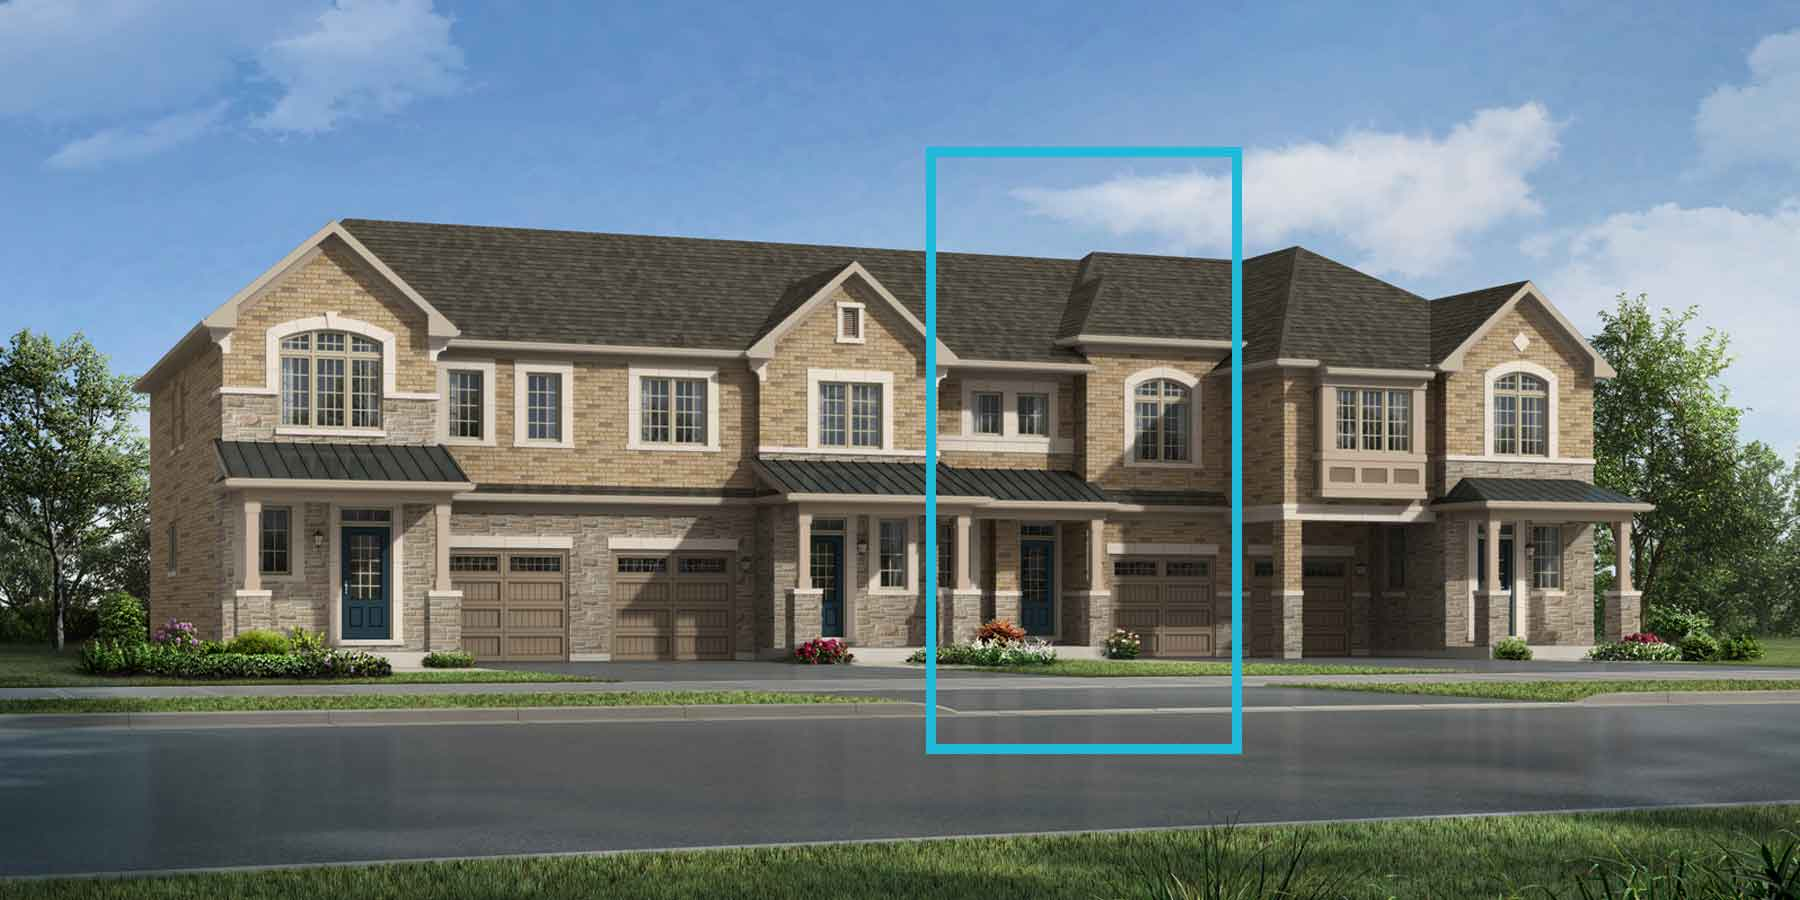 Greenfield Plan englishmanor_seatonwhitevale_bayshore_main at Seaton Whitevale in Pickering Ontario by Mattamy Homes